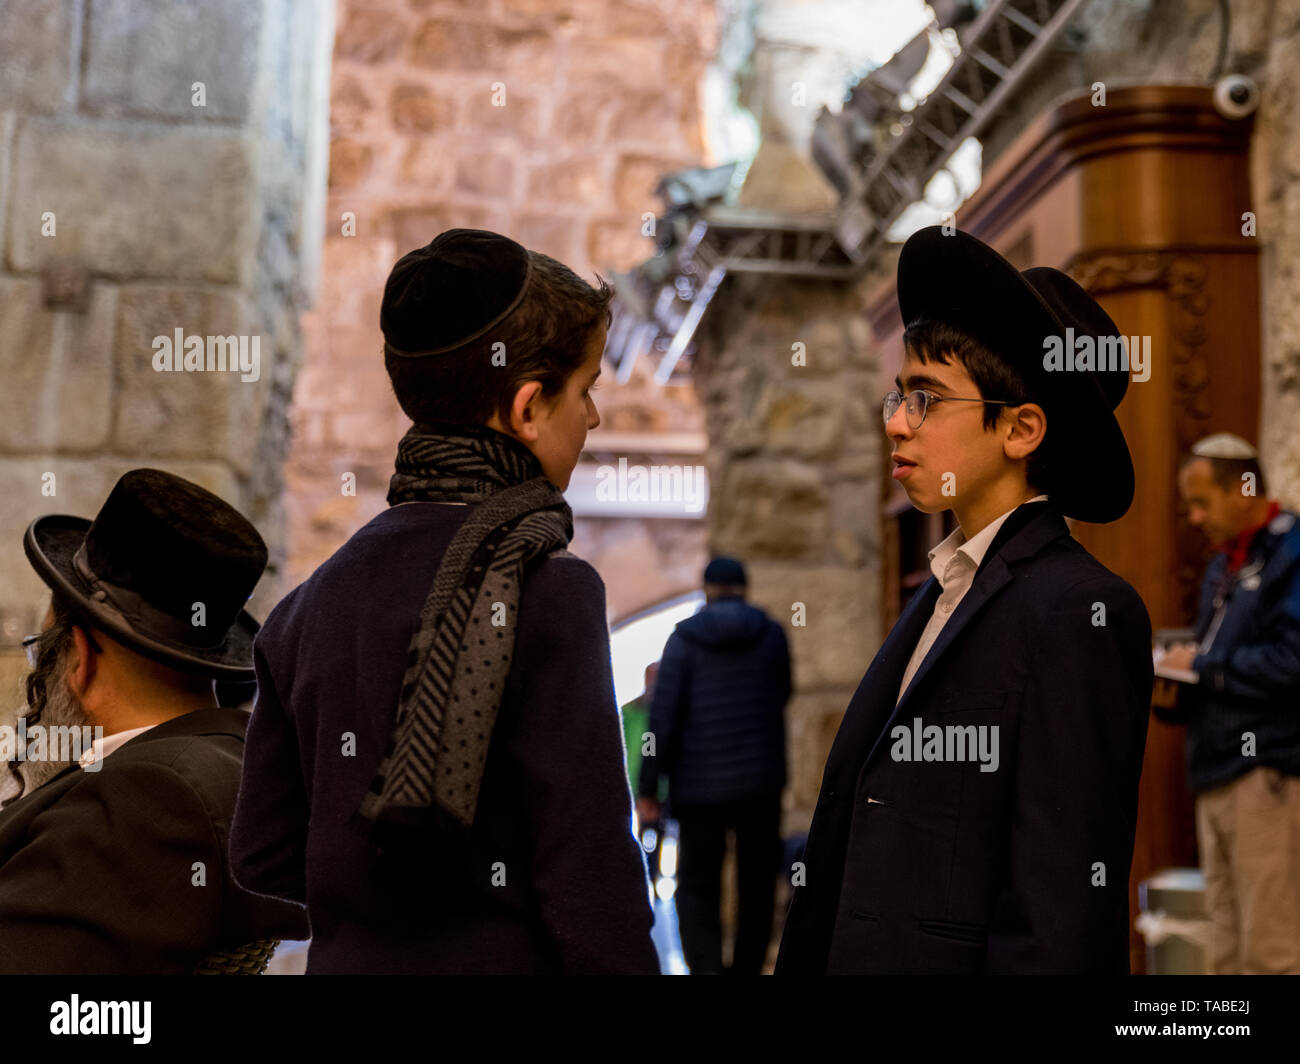 Jerusalem,Israel,29-march-2019:Tow jew boys talking in the streets of jerusalem,jerusalem is the religious centre - Stock Image